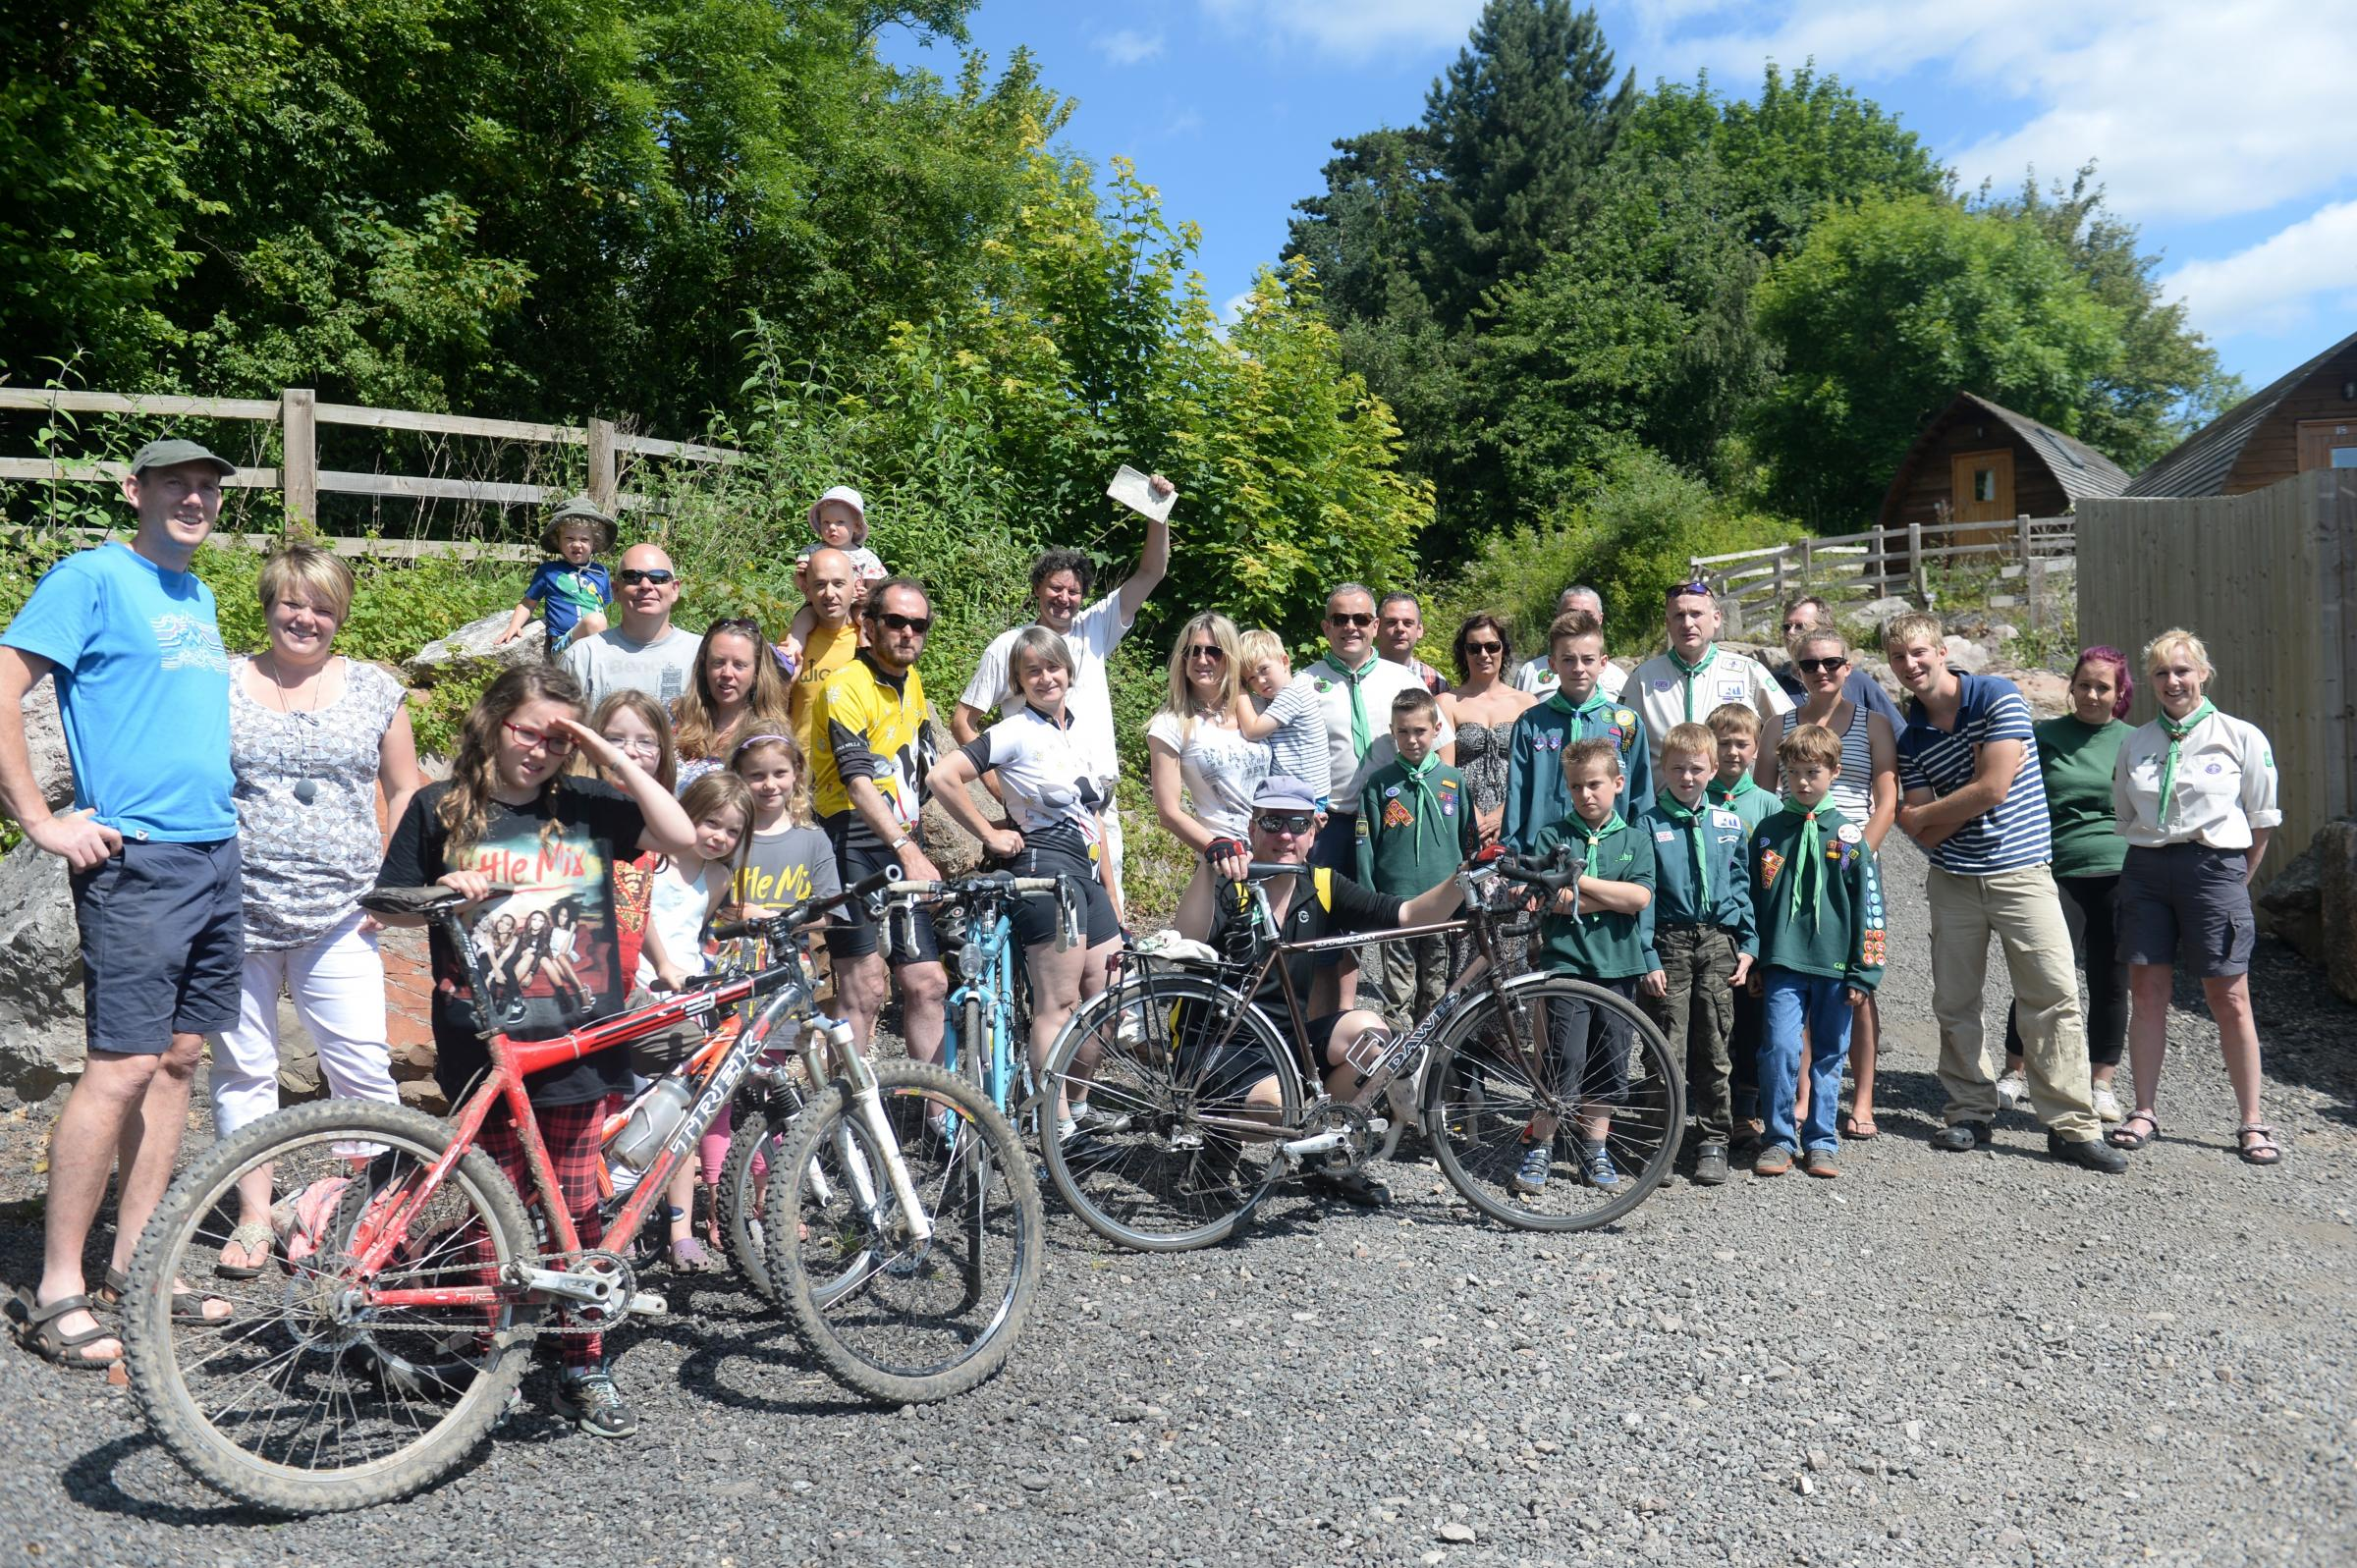 Petition backs Wye Valley bike path